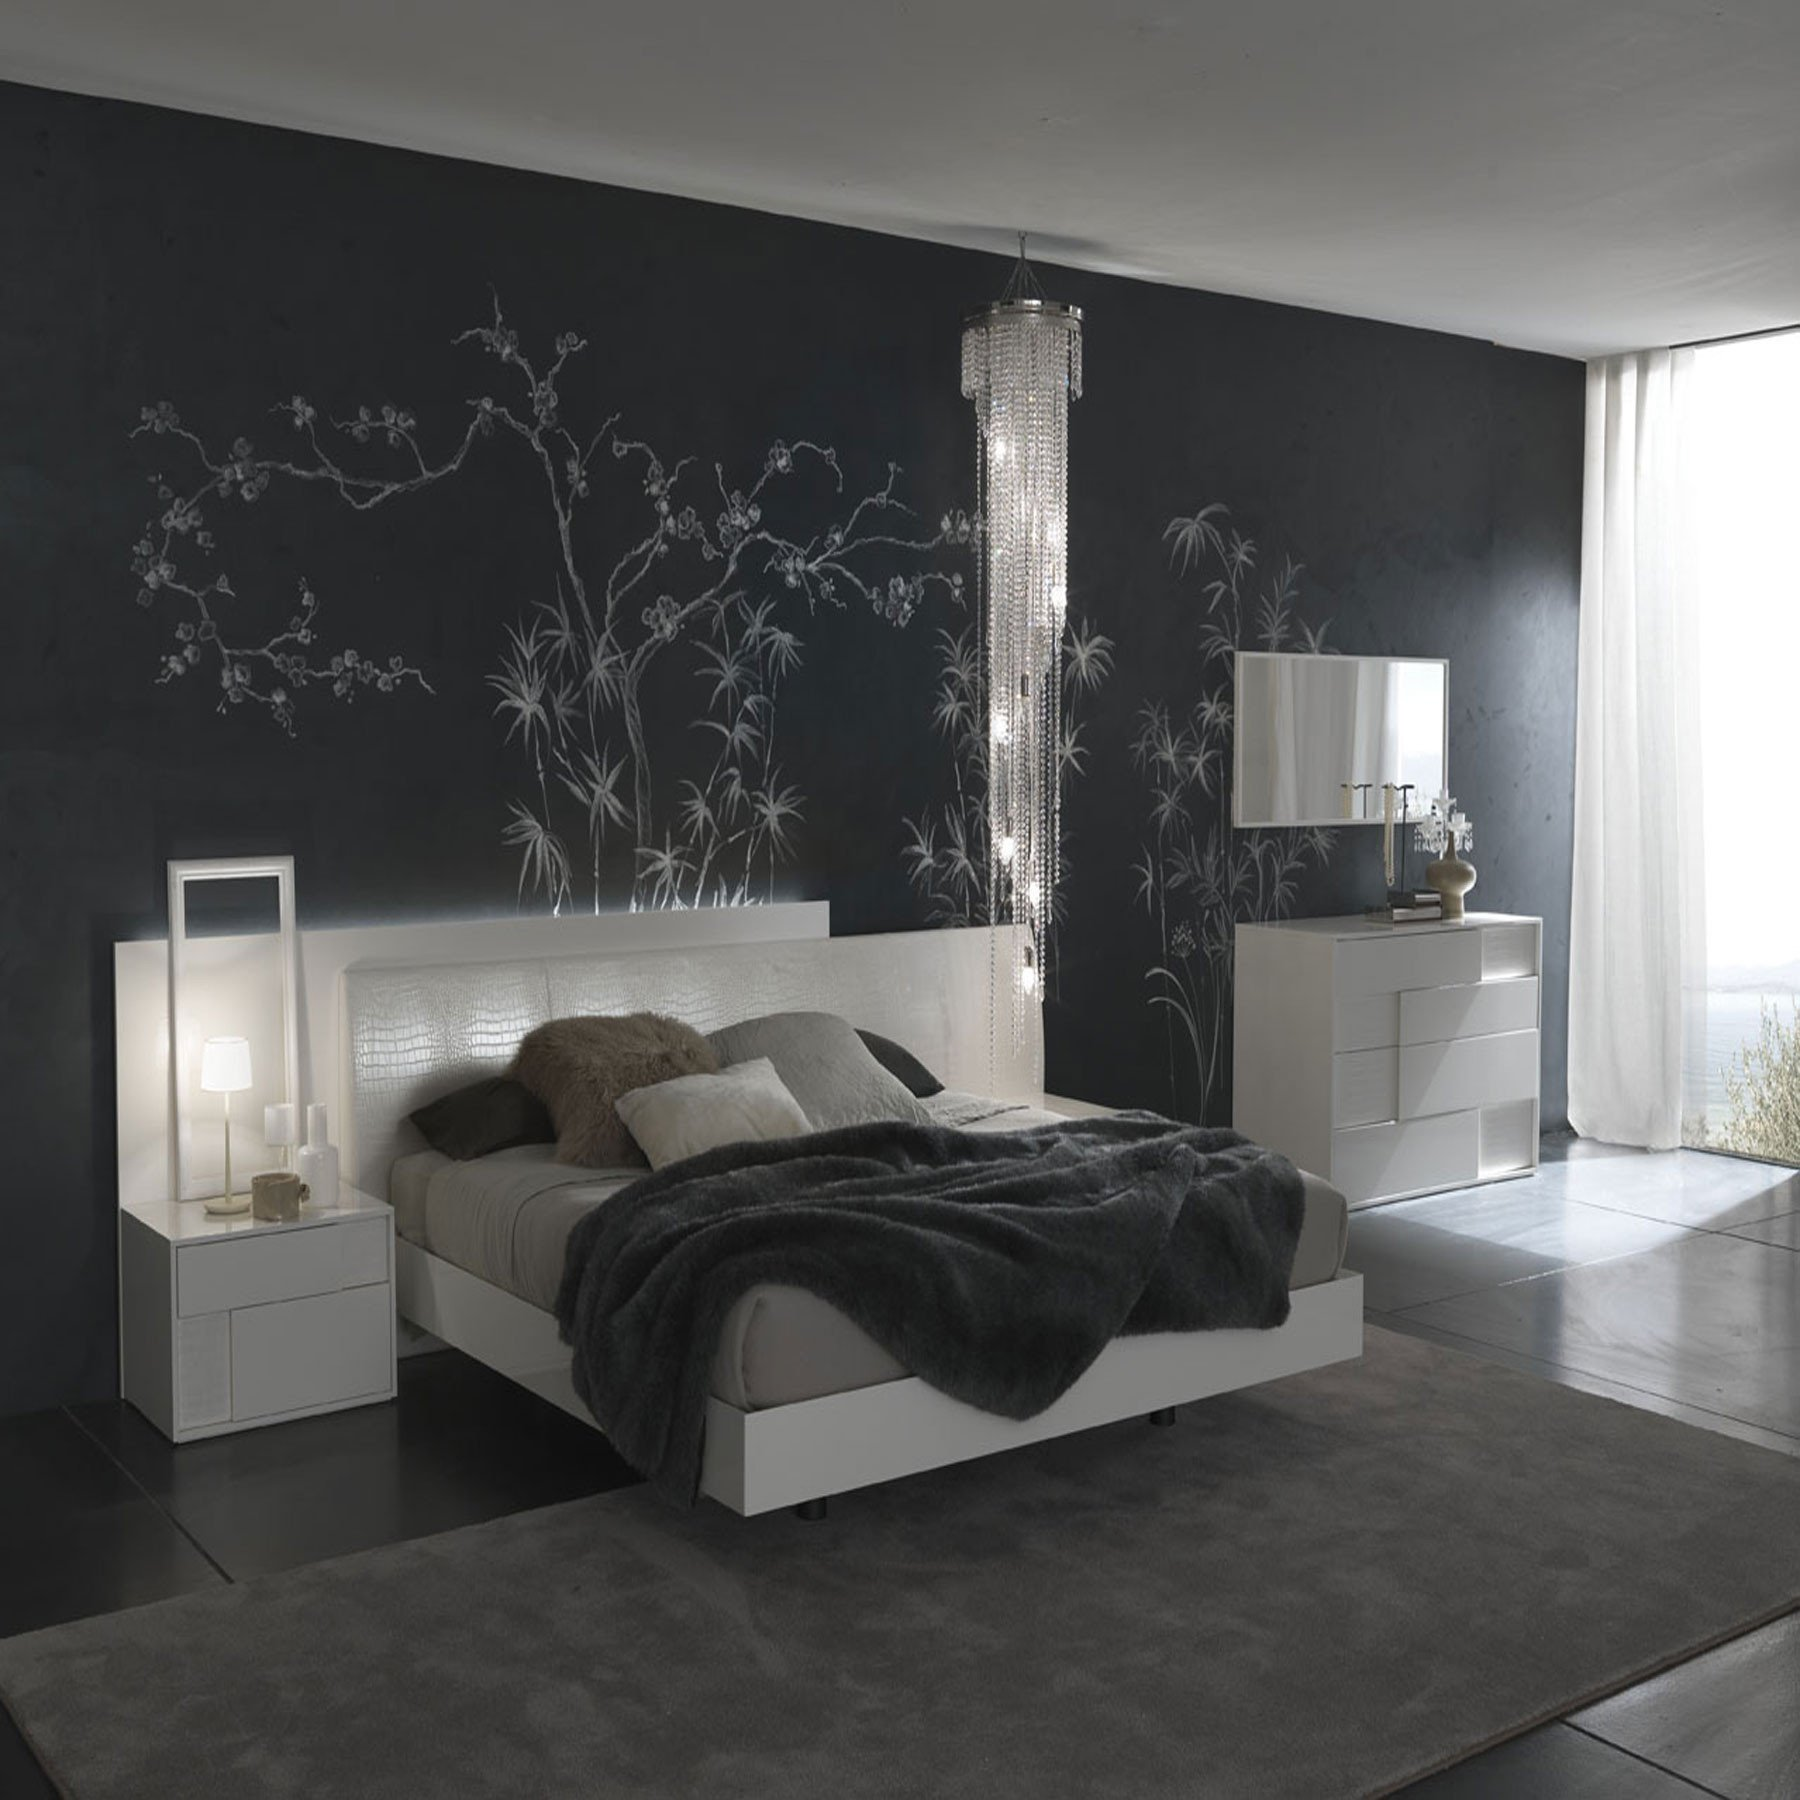 White Wall Decor for Bedroom Inspirational 50 Best Bedrooms with White Furniture for 2019